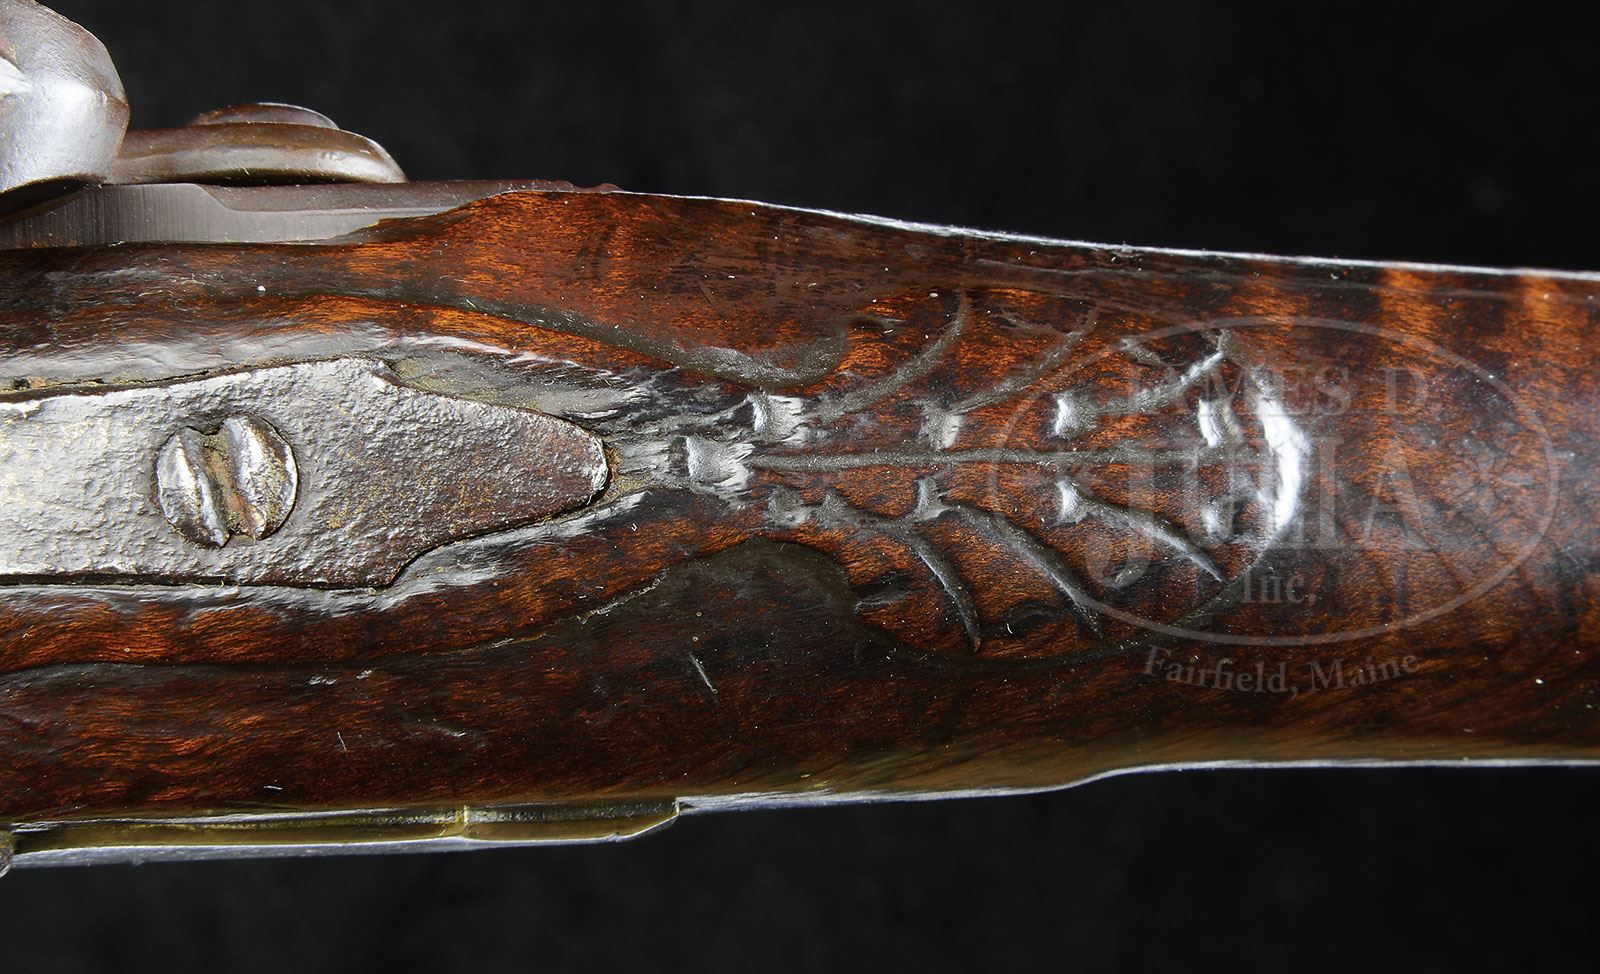 Relief carved flintlock kentucky smooth rifle attributed